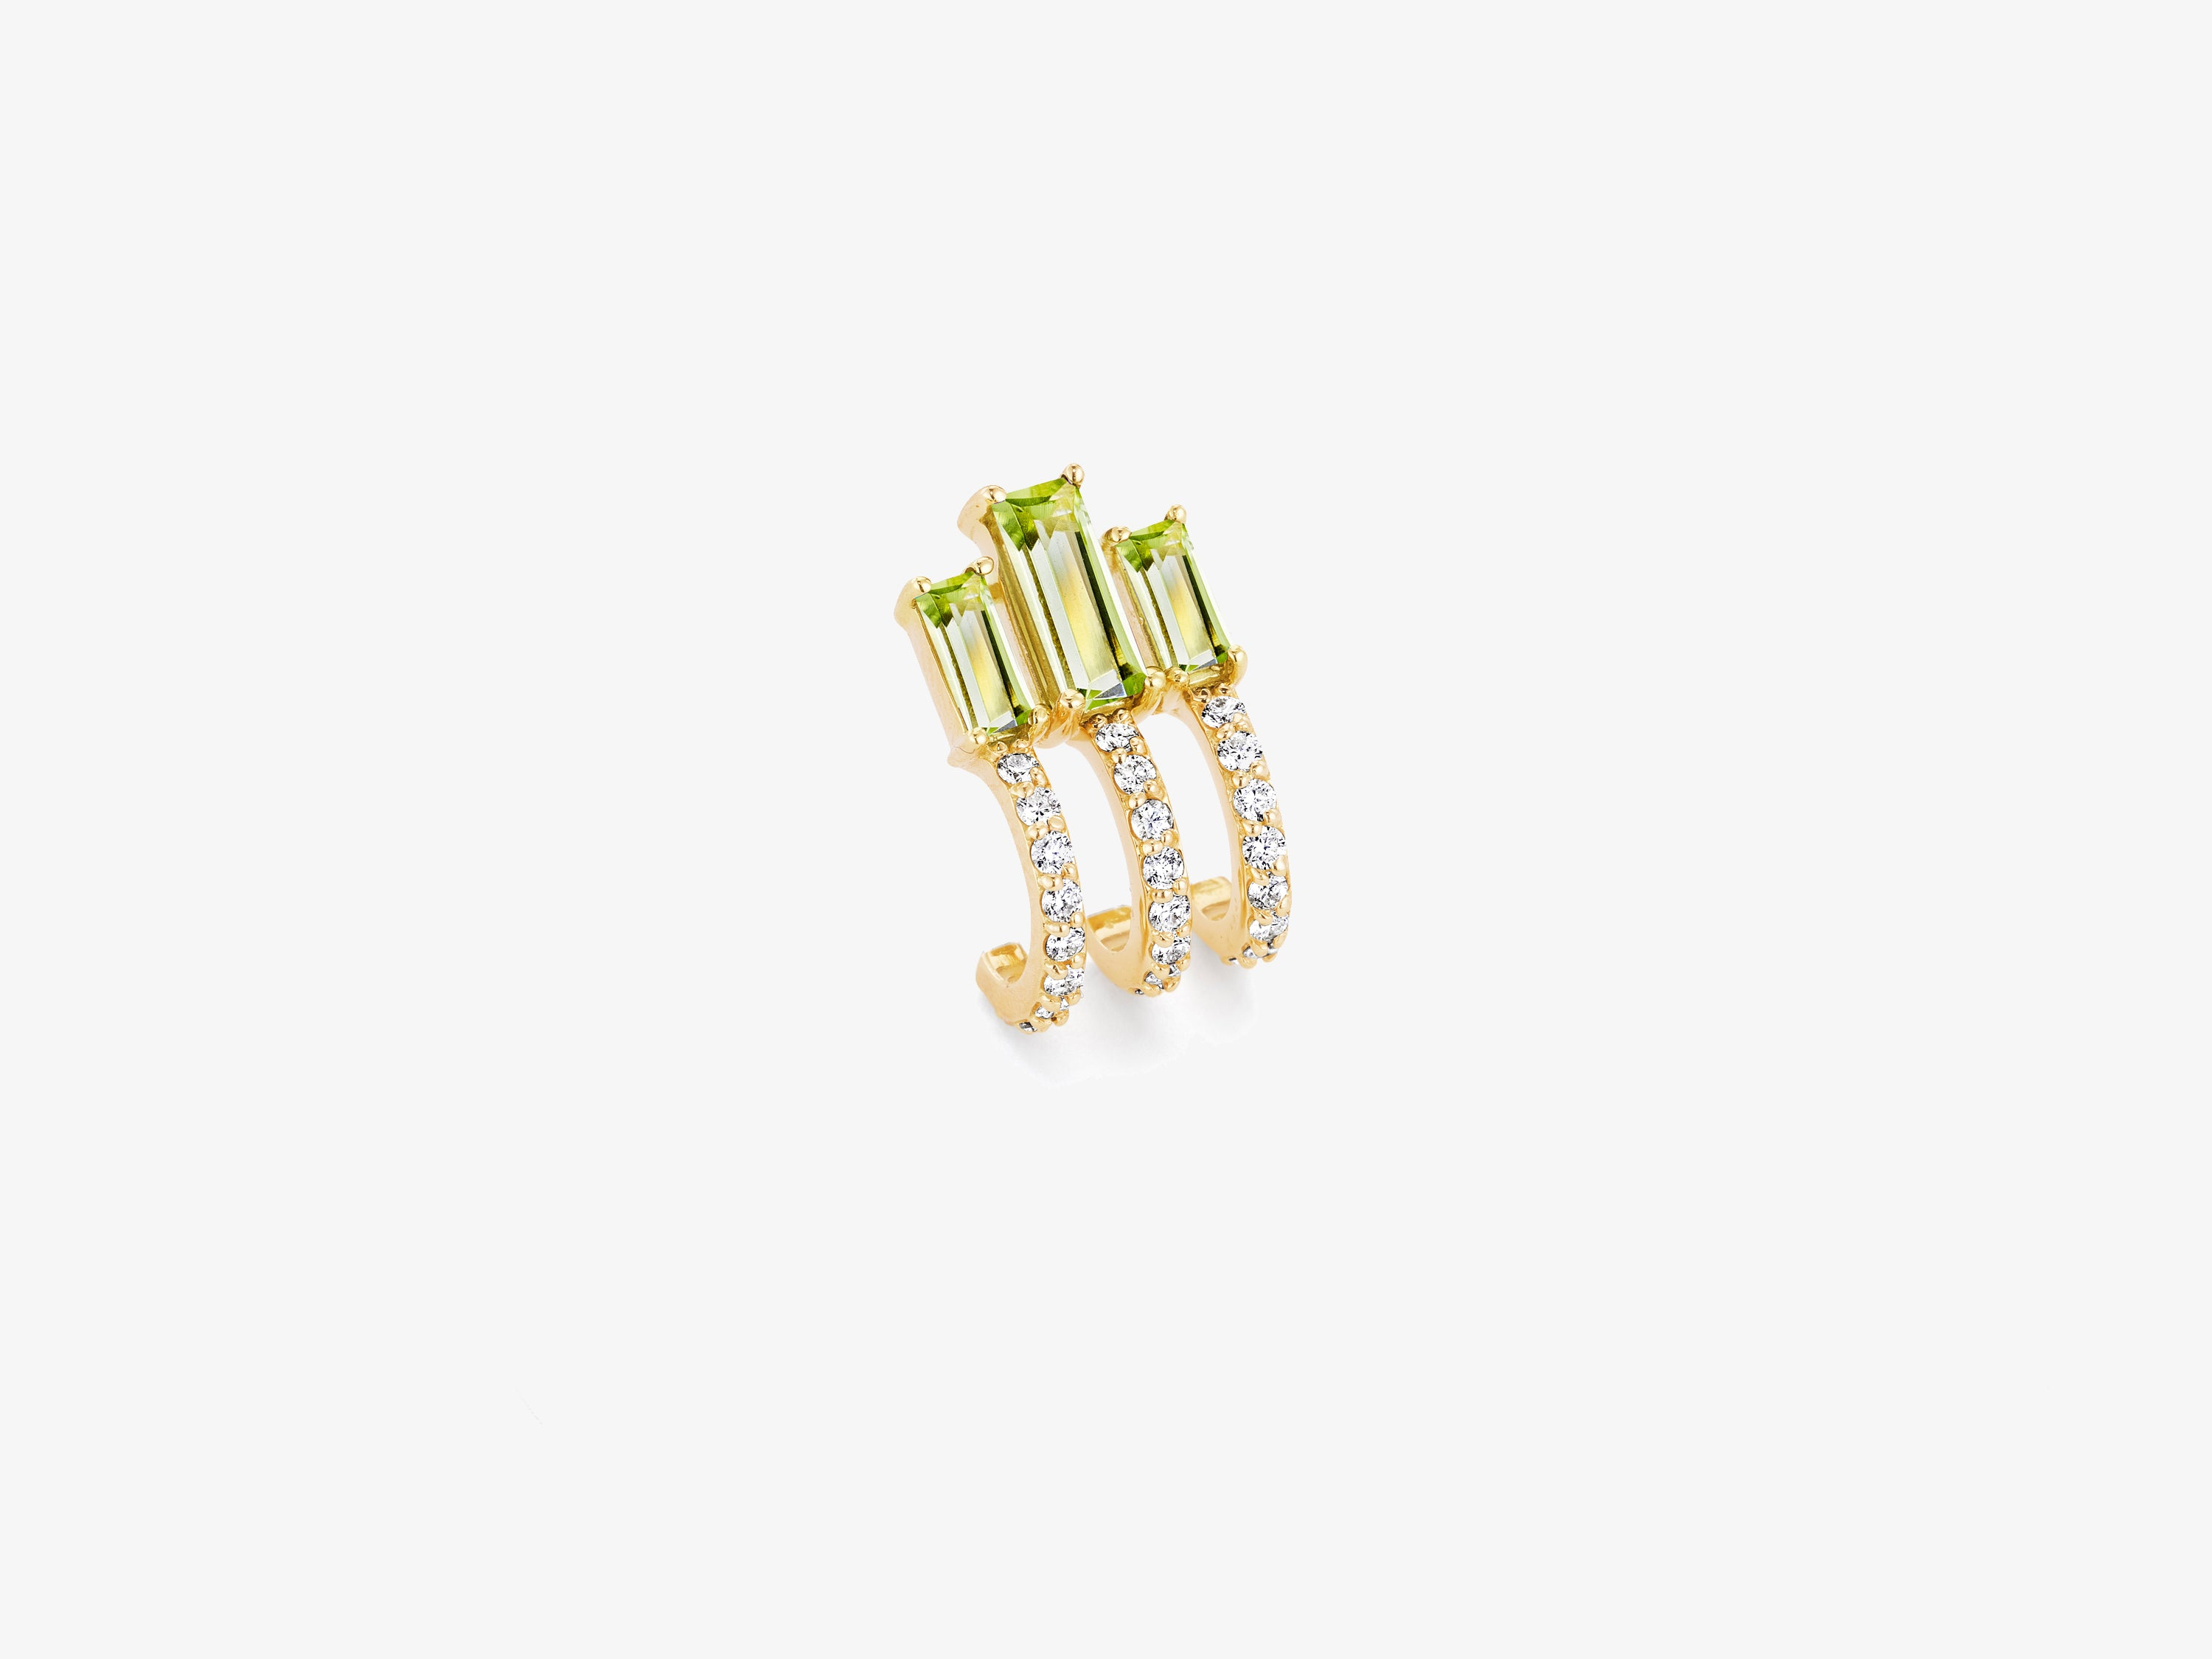 Diamond Pave Huggie Stud with Triple Baguette Gemstone Details